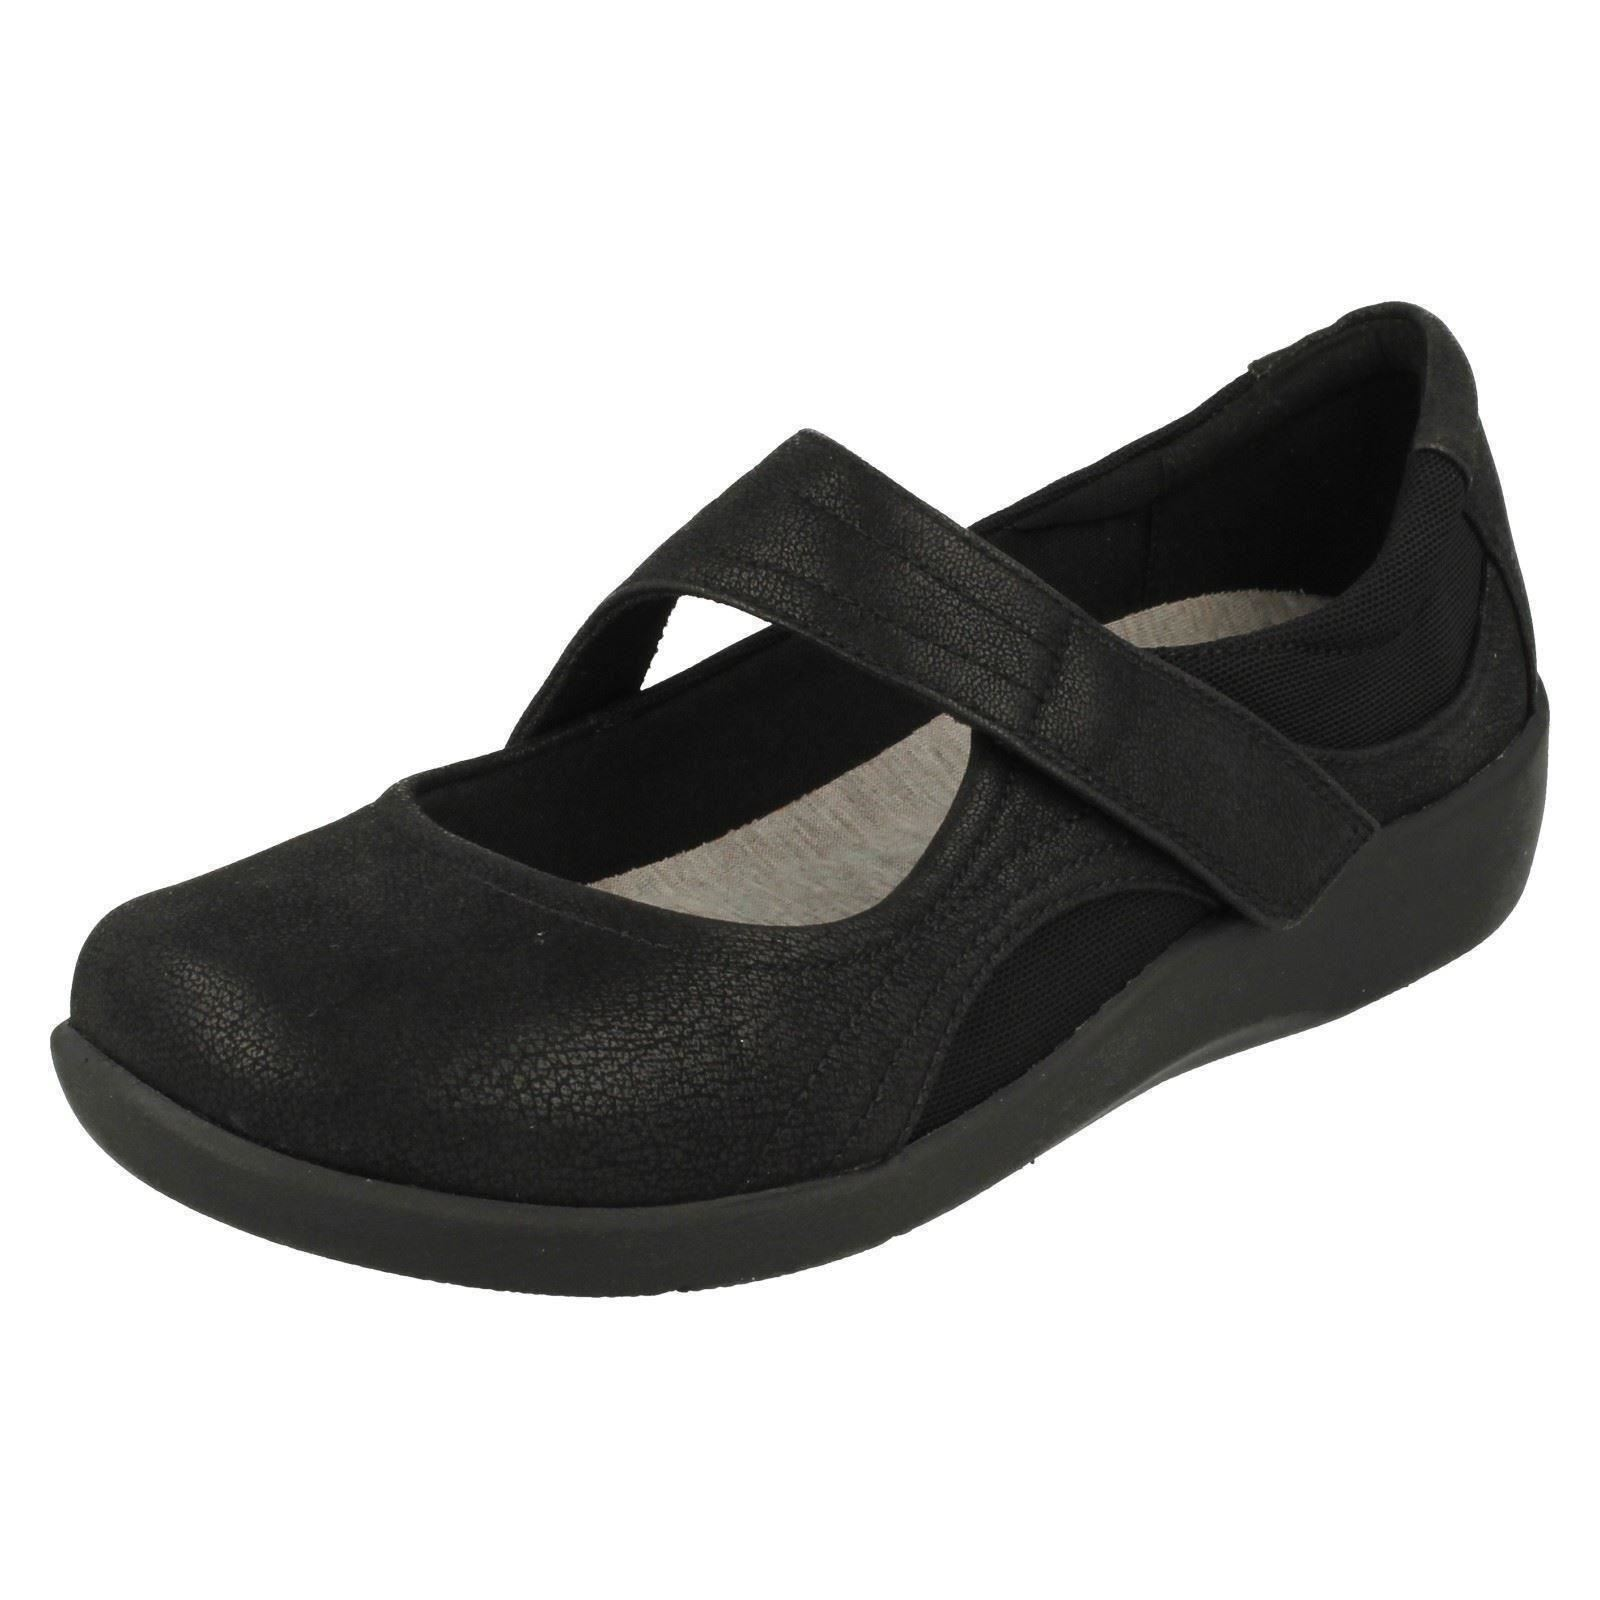 Sillian Bella - Black, Black, 5.5 UK